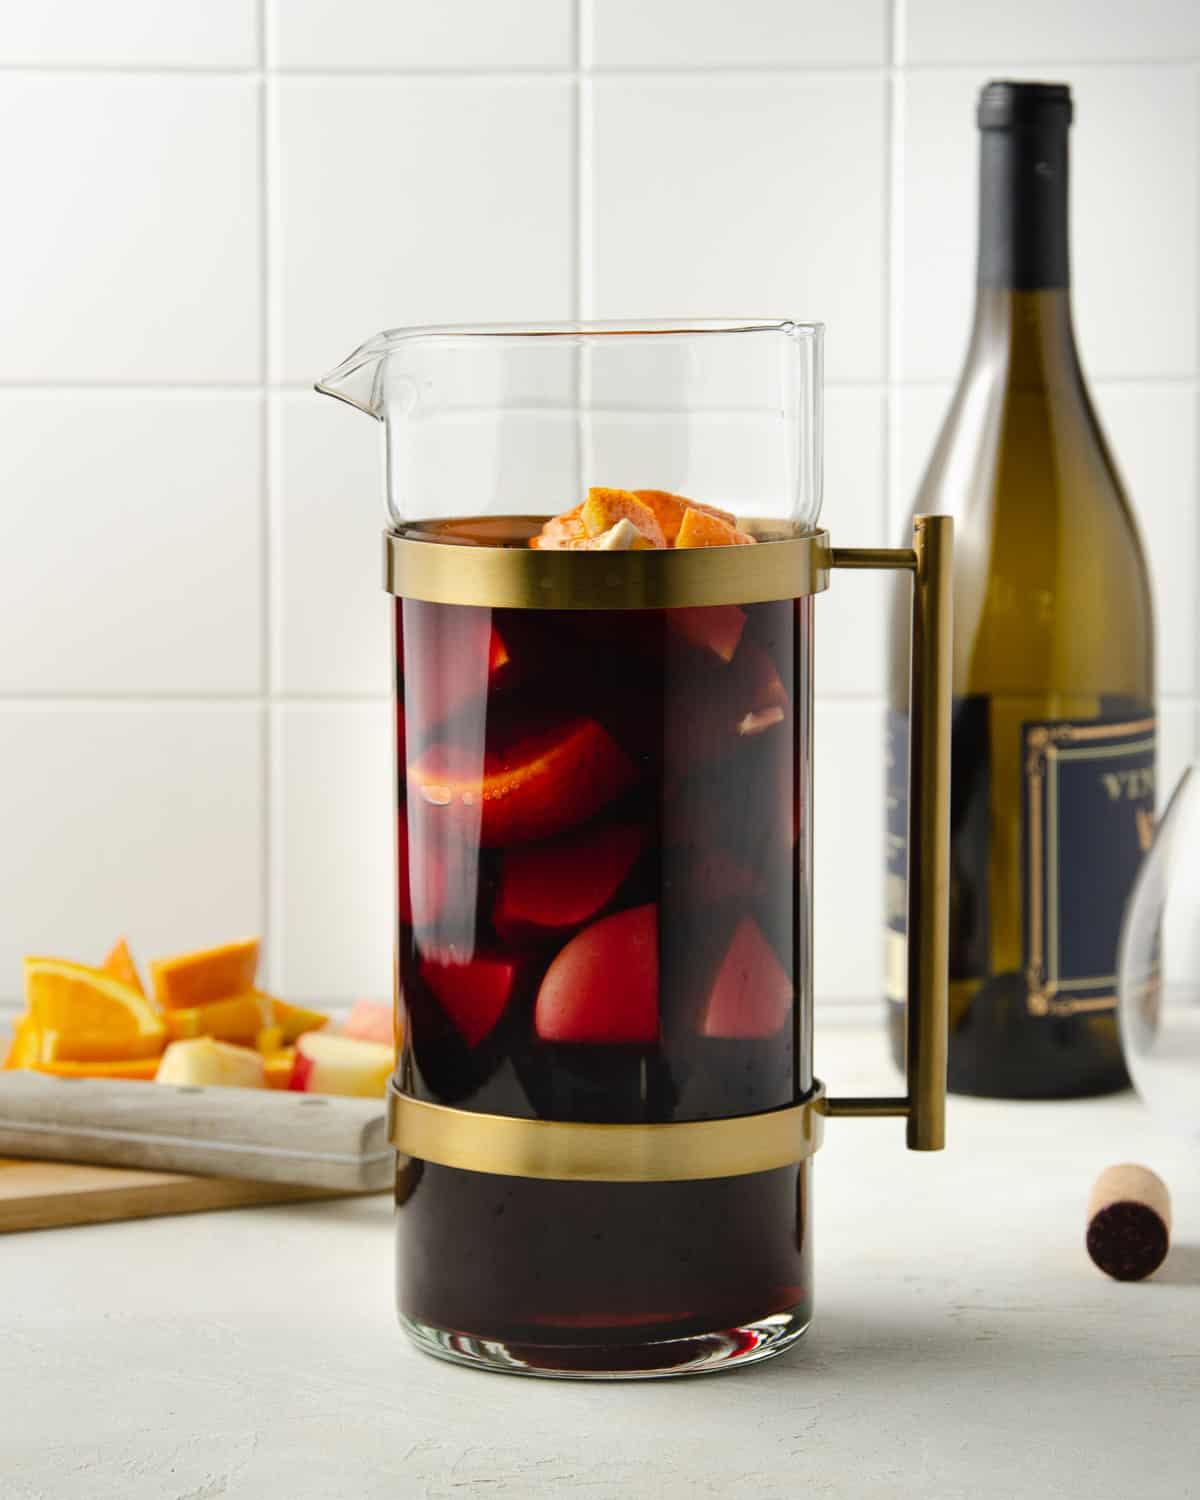 A pitcher of sangria with a bottle of wine in the back.